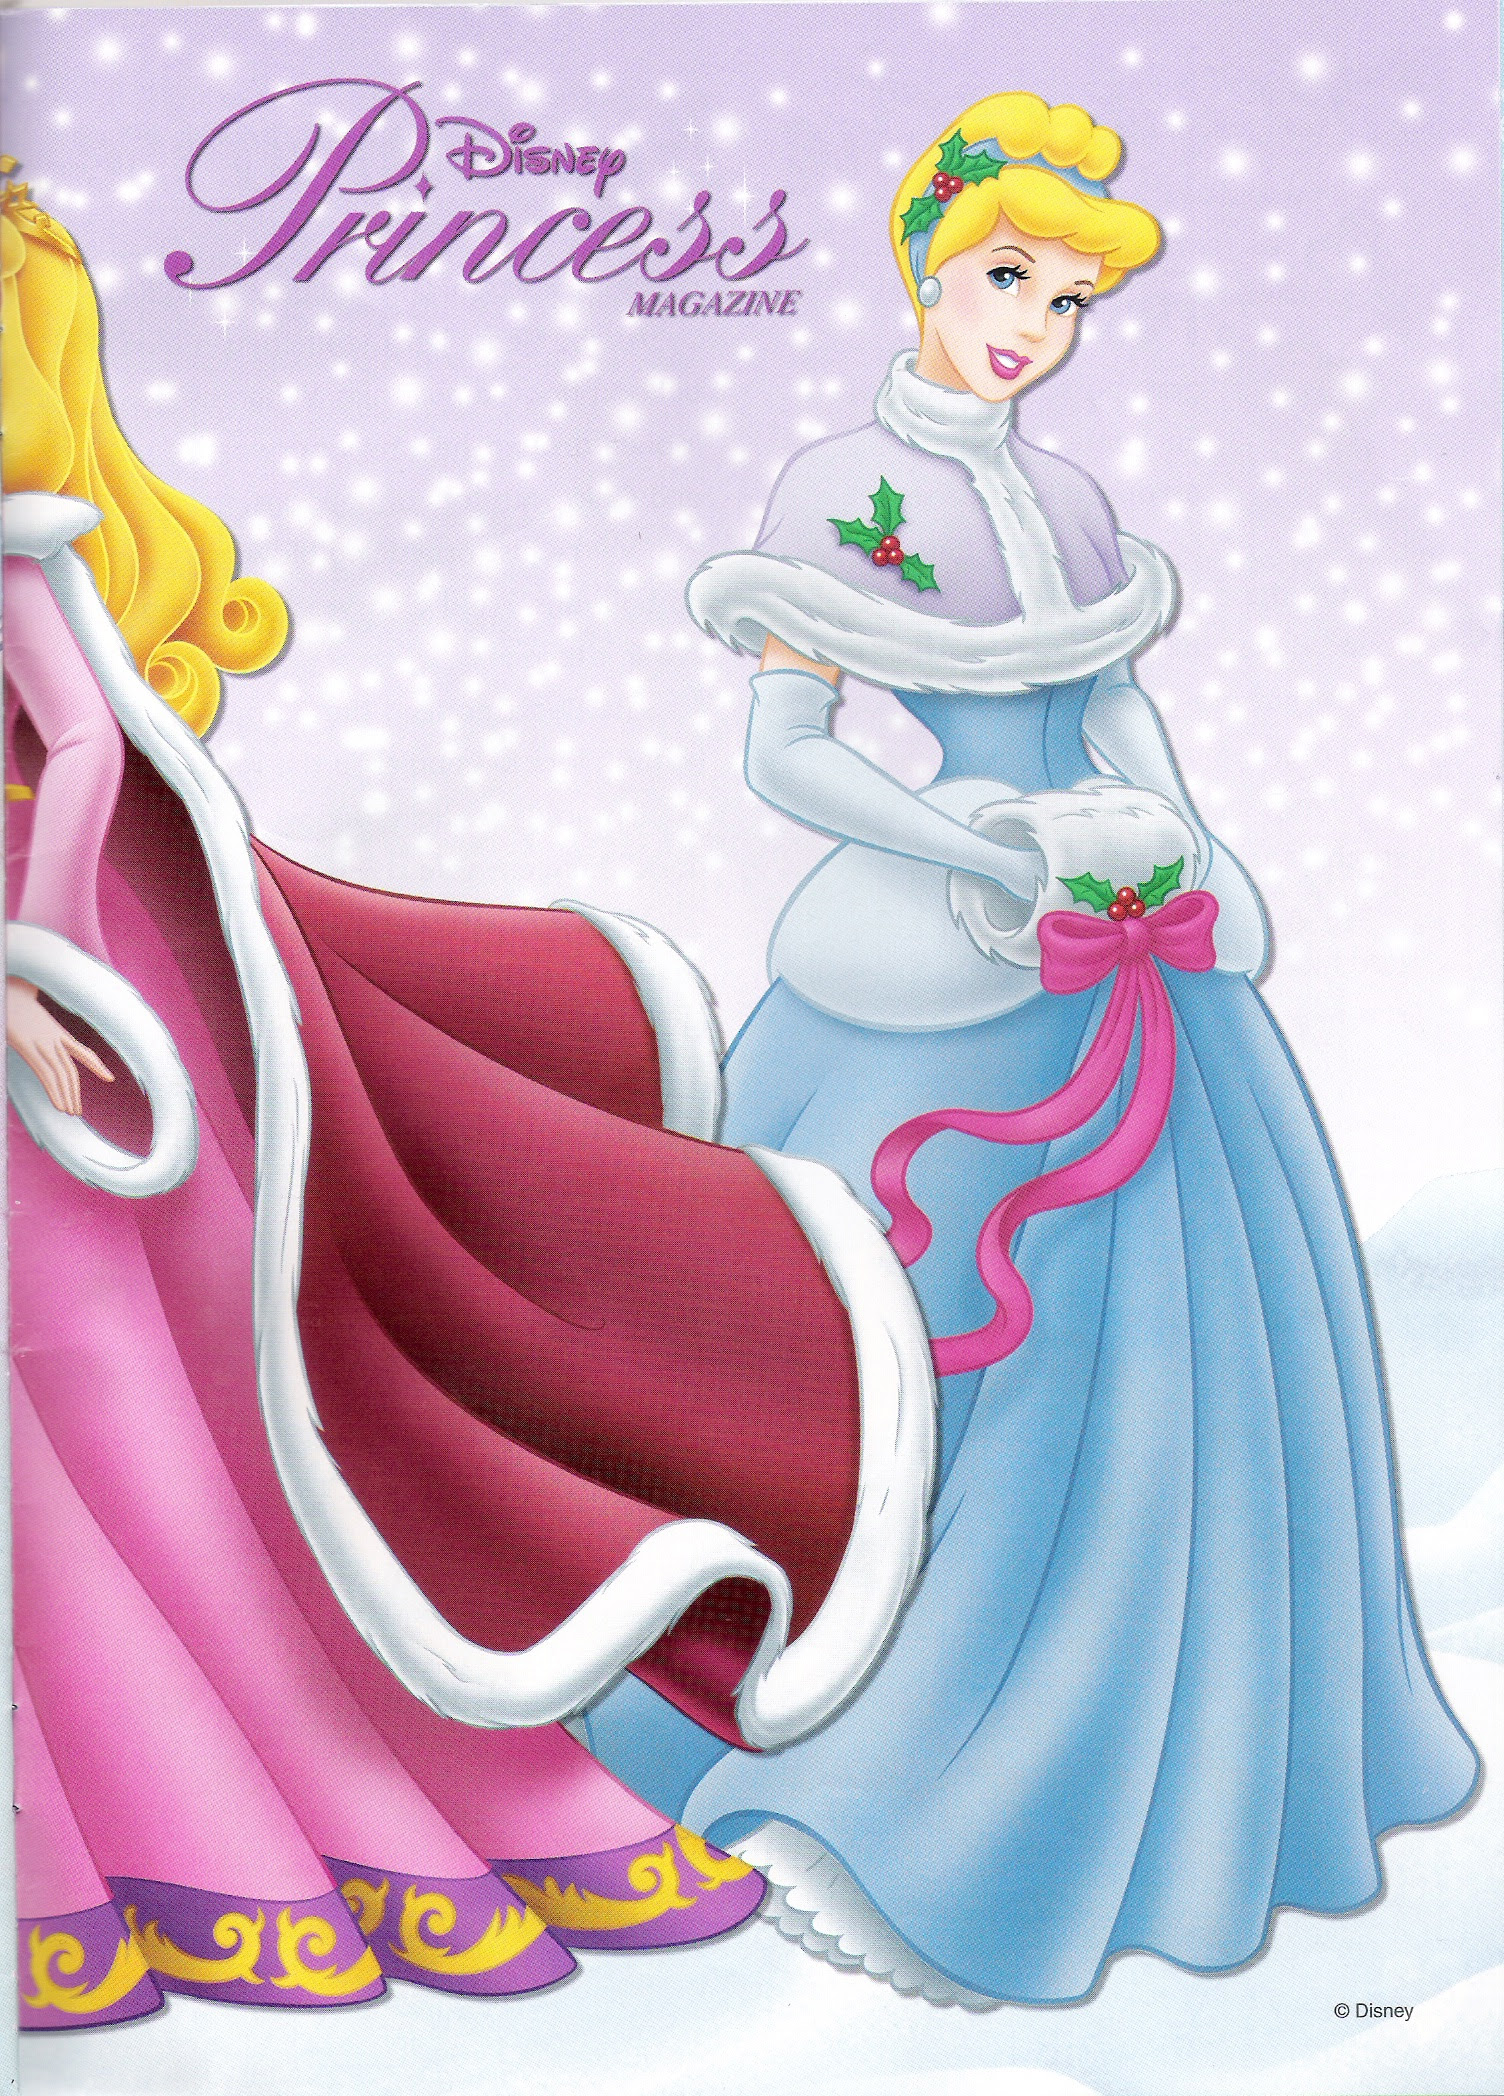 Requested Mini Posters from Disney Princess Magazine ...